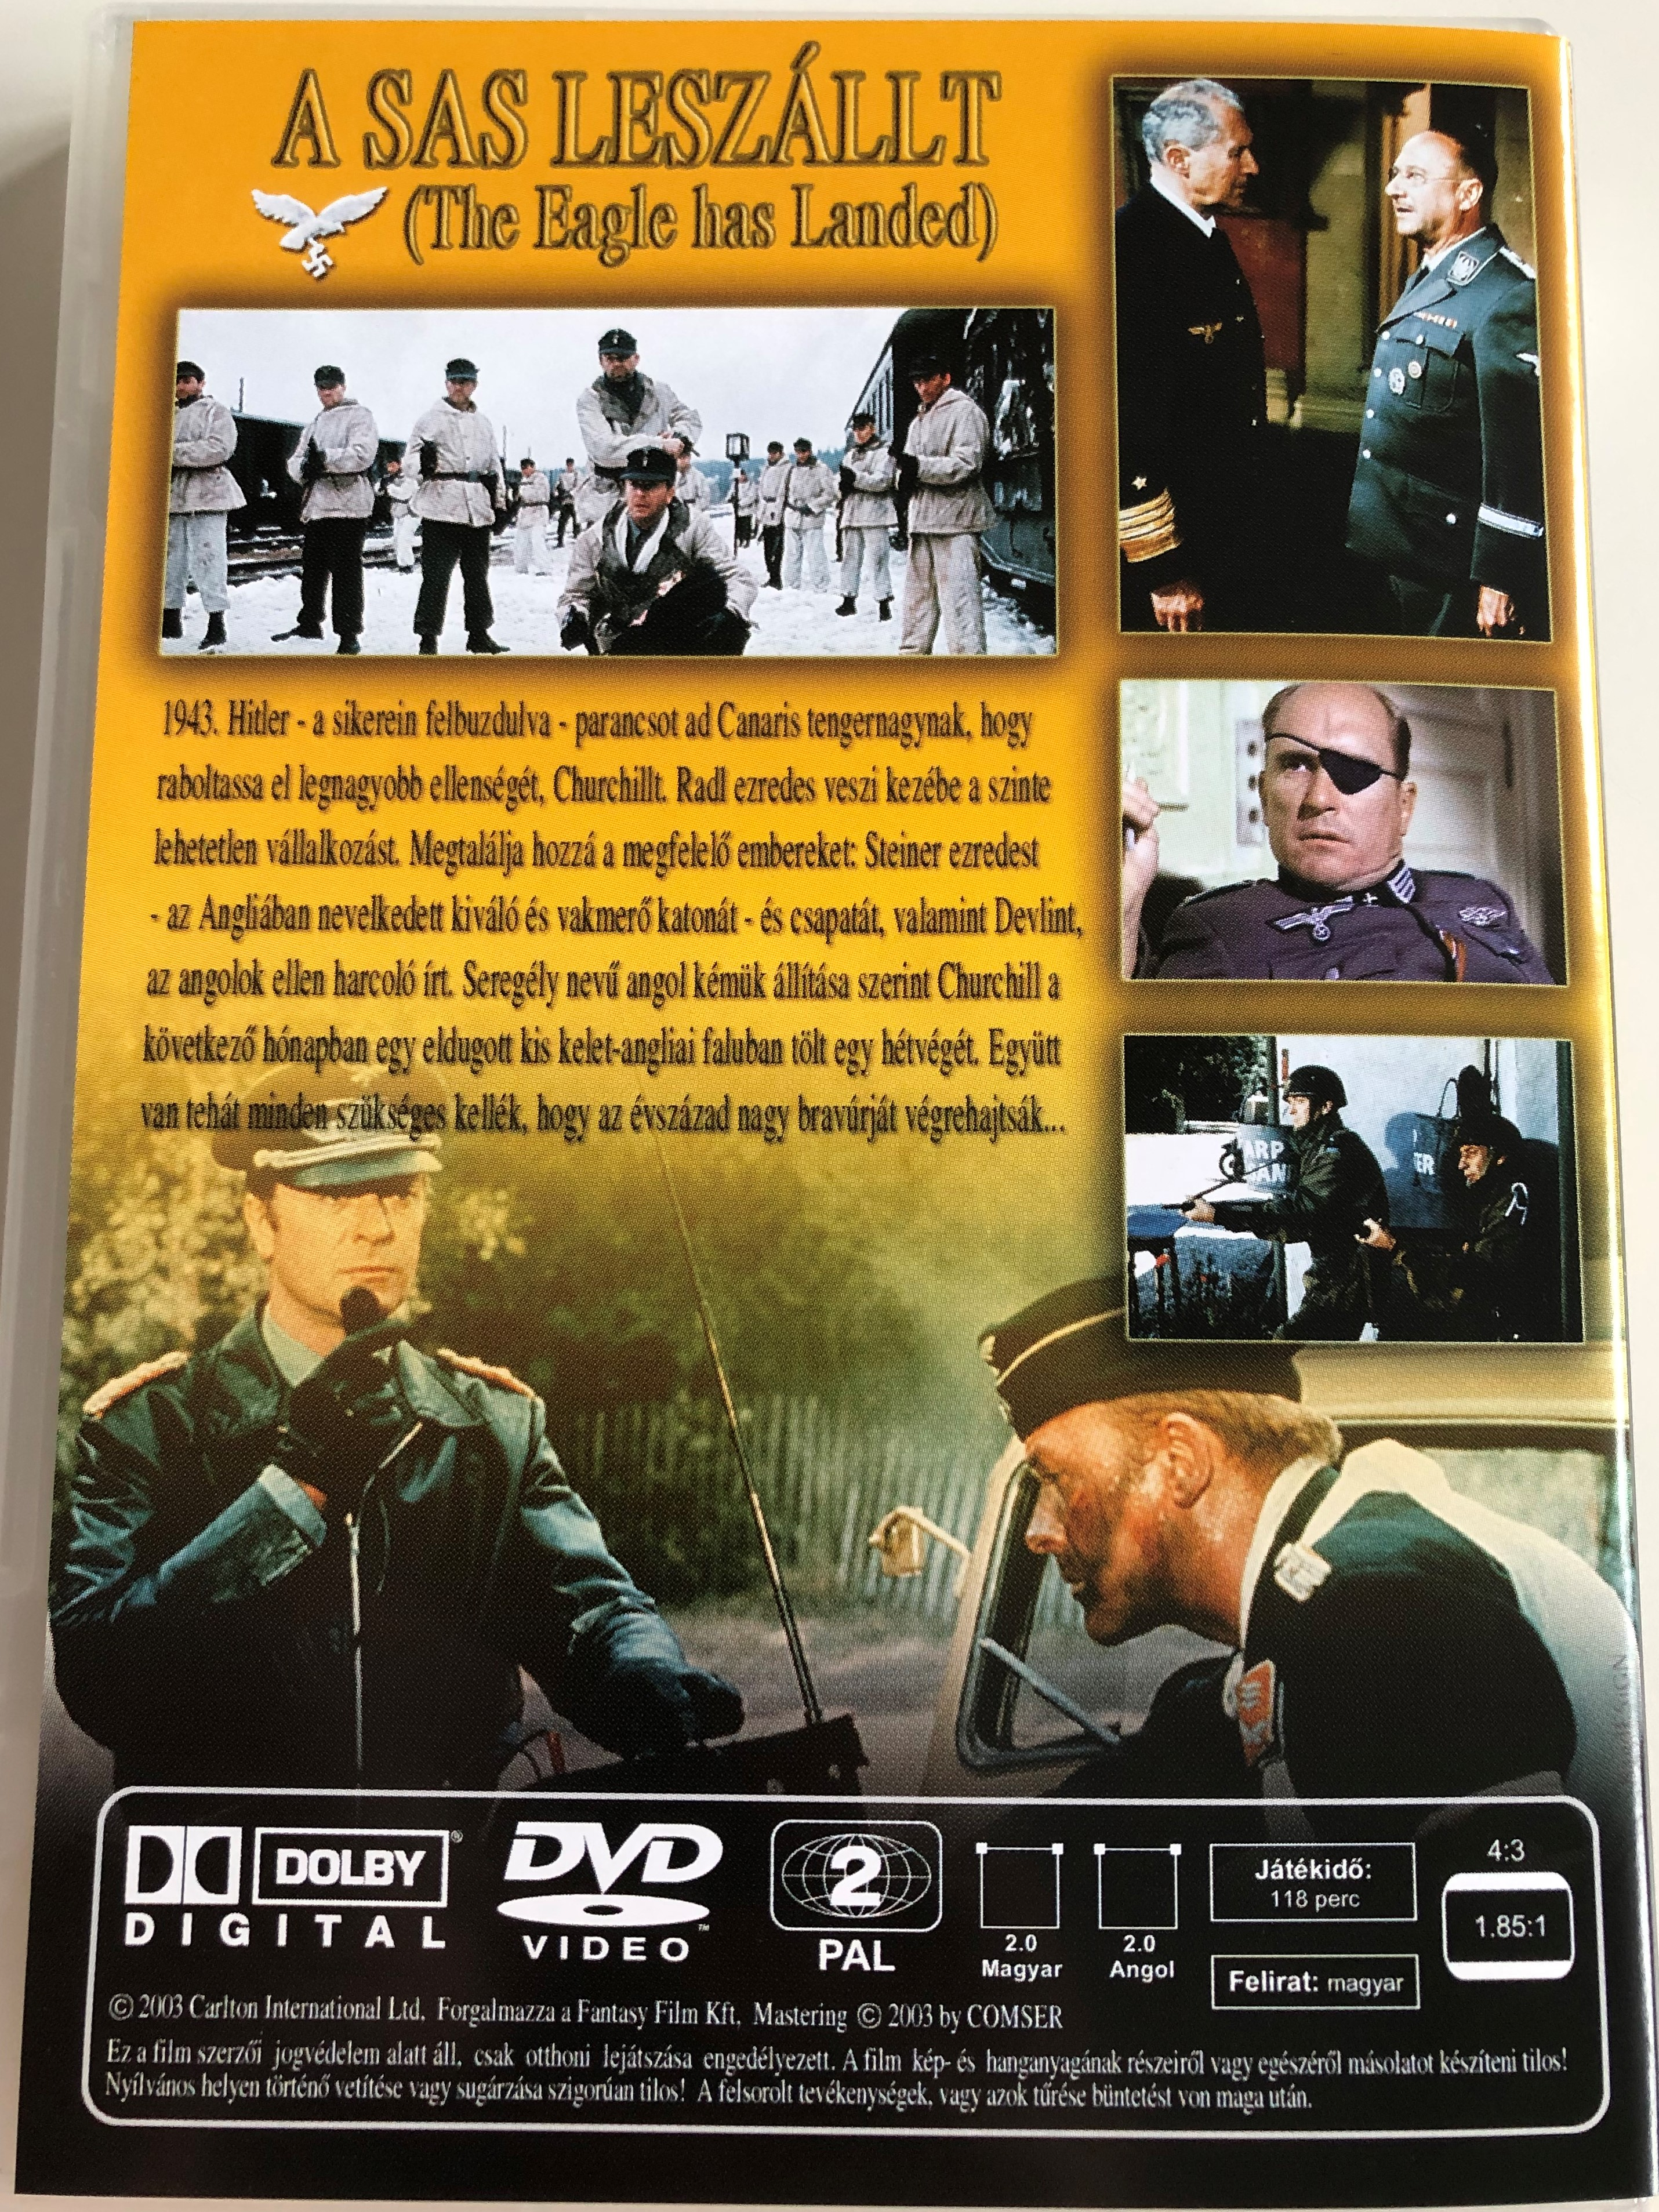 the-eagle-has-landed-dvd-1976-a-sas-lesz-llt-directed-by-john-sturges-2.jpg